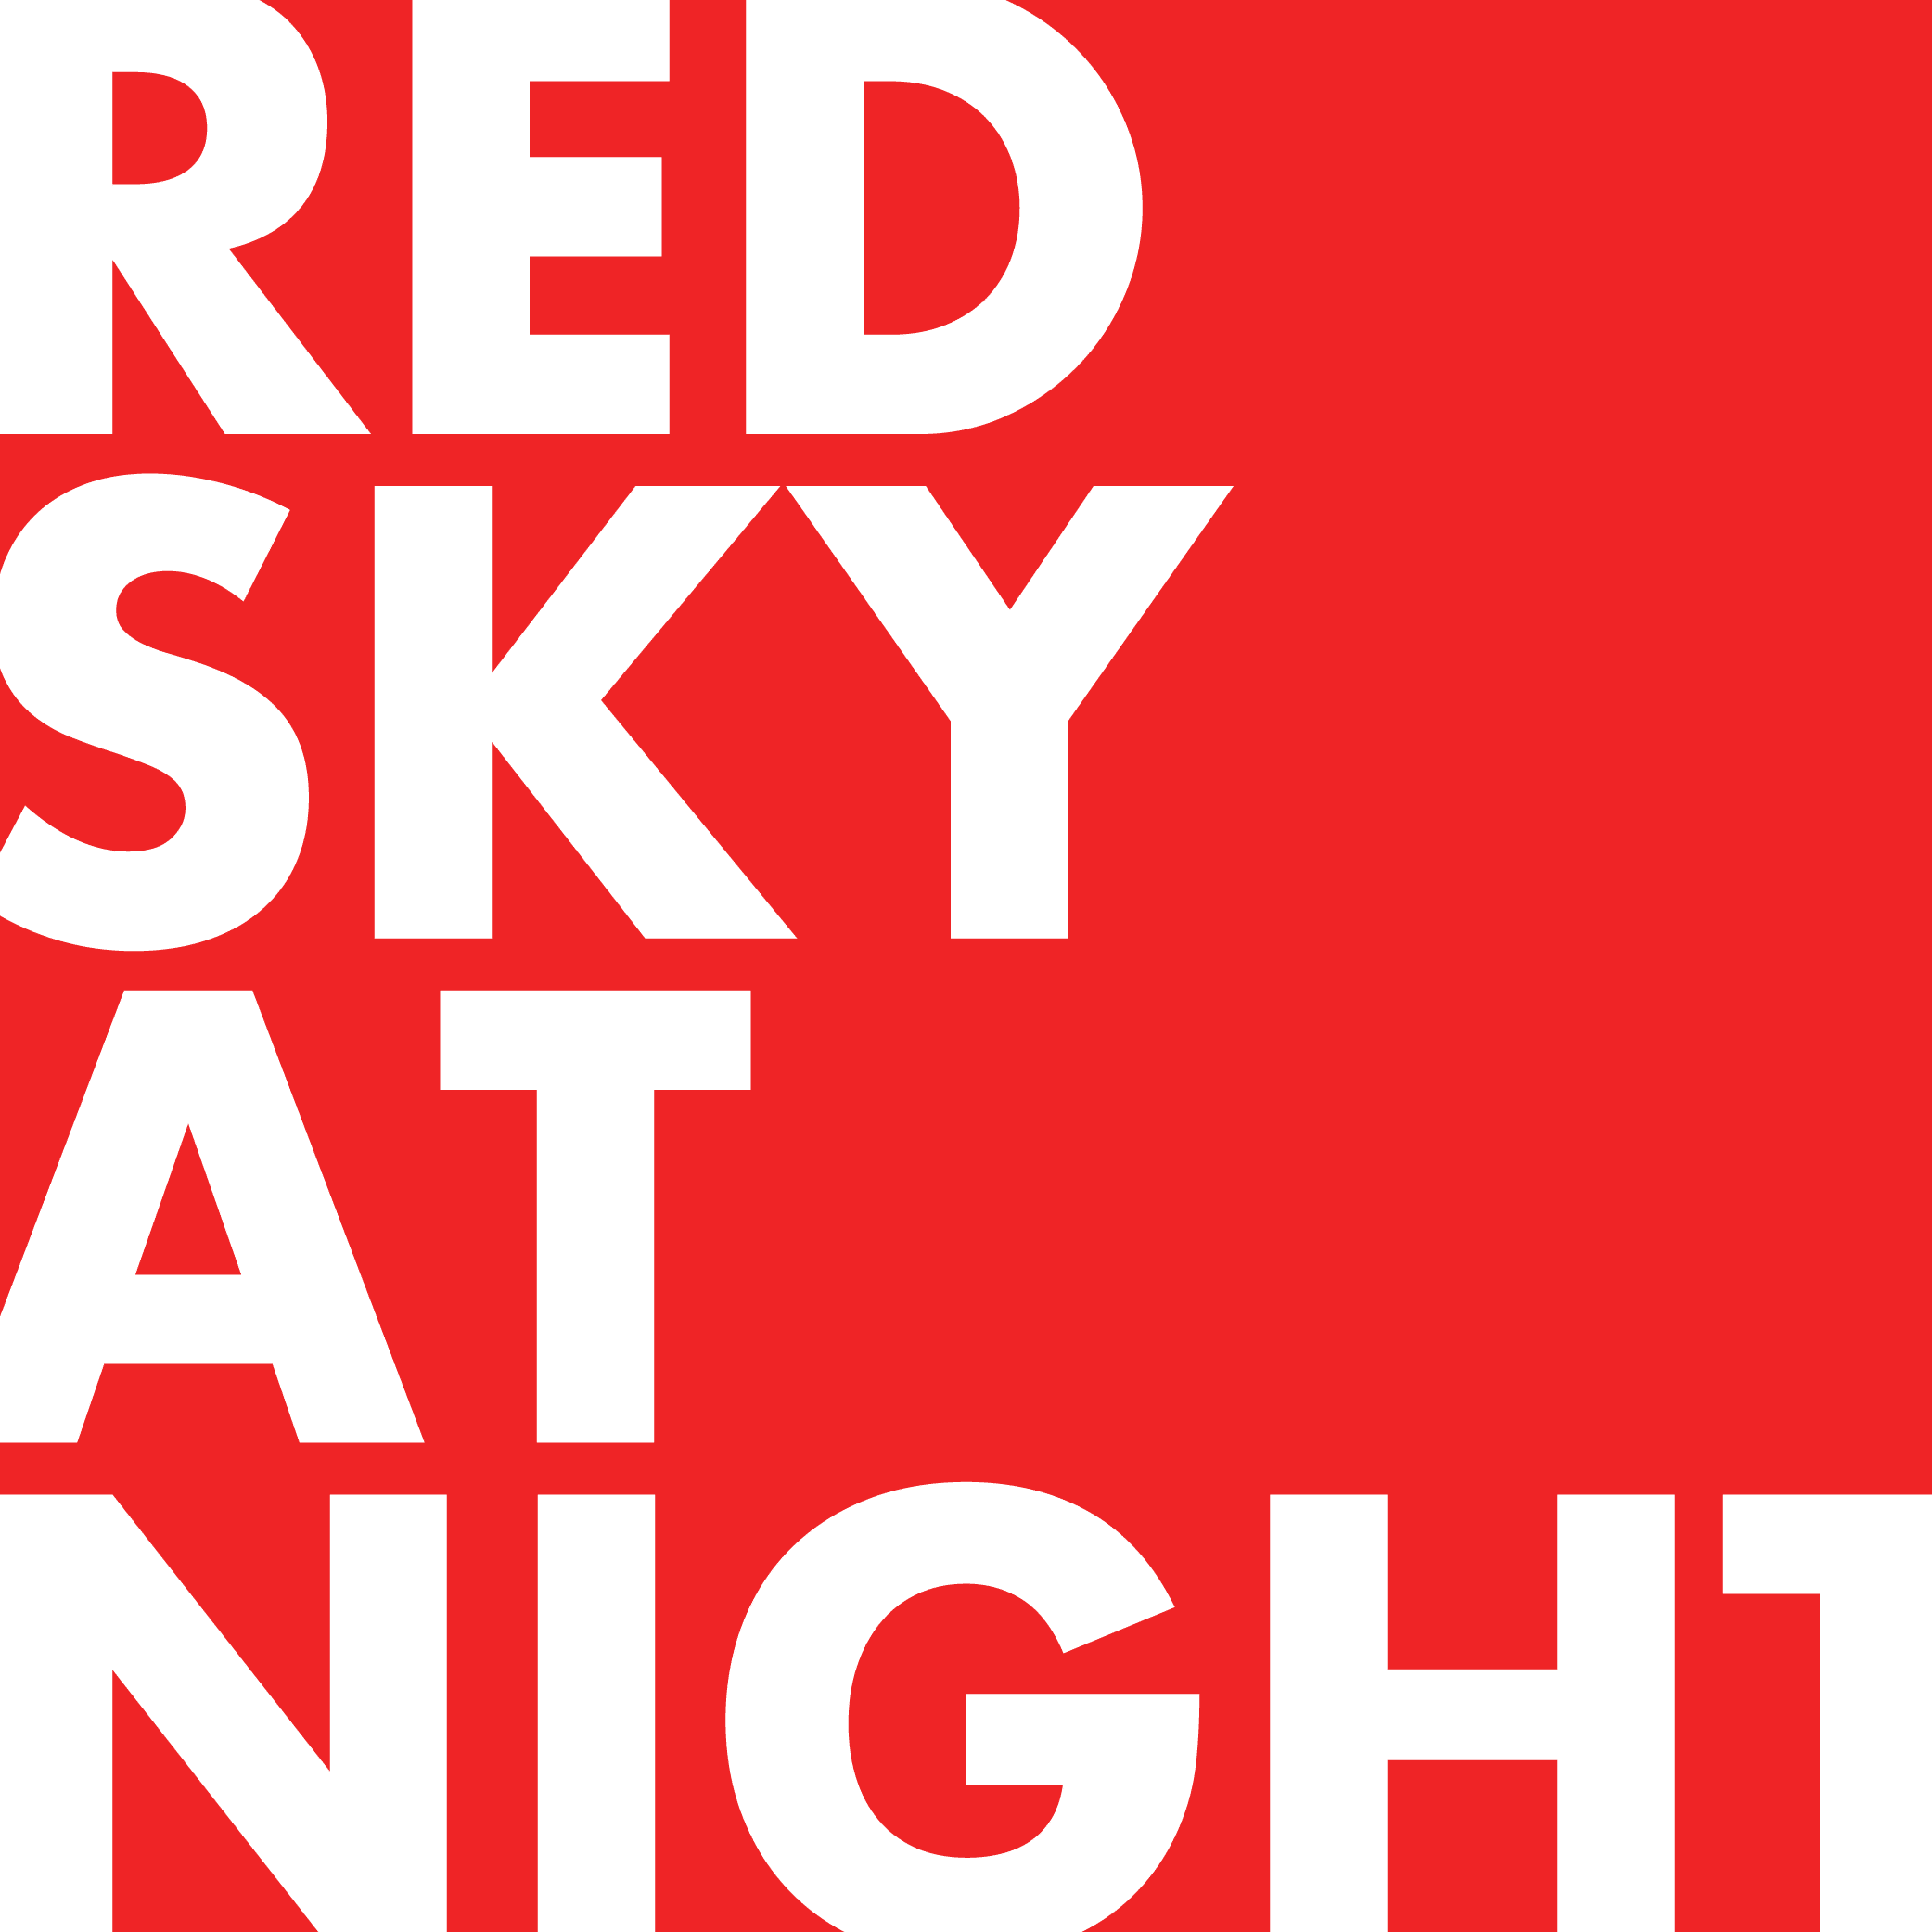 The Red Sky at Night logo in red